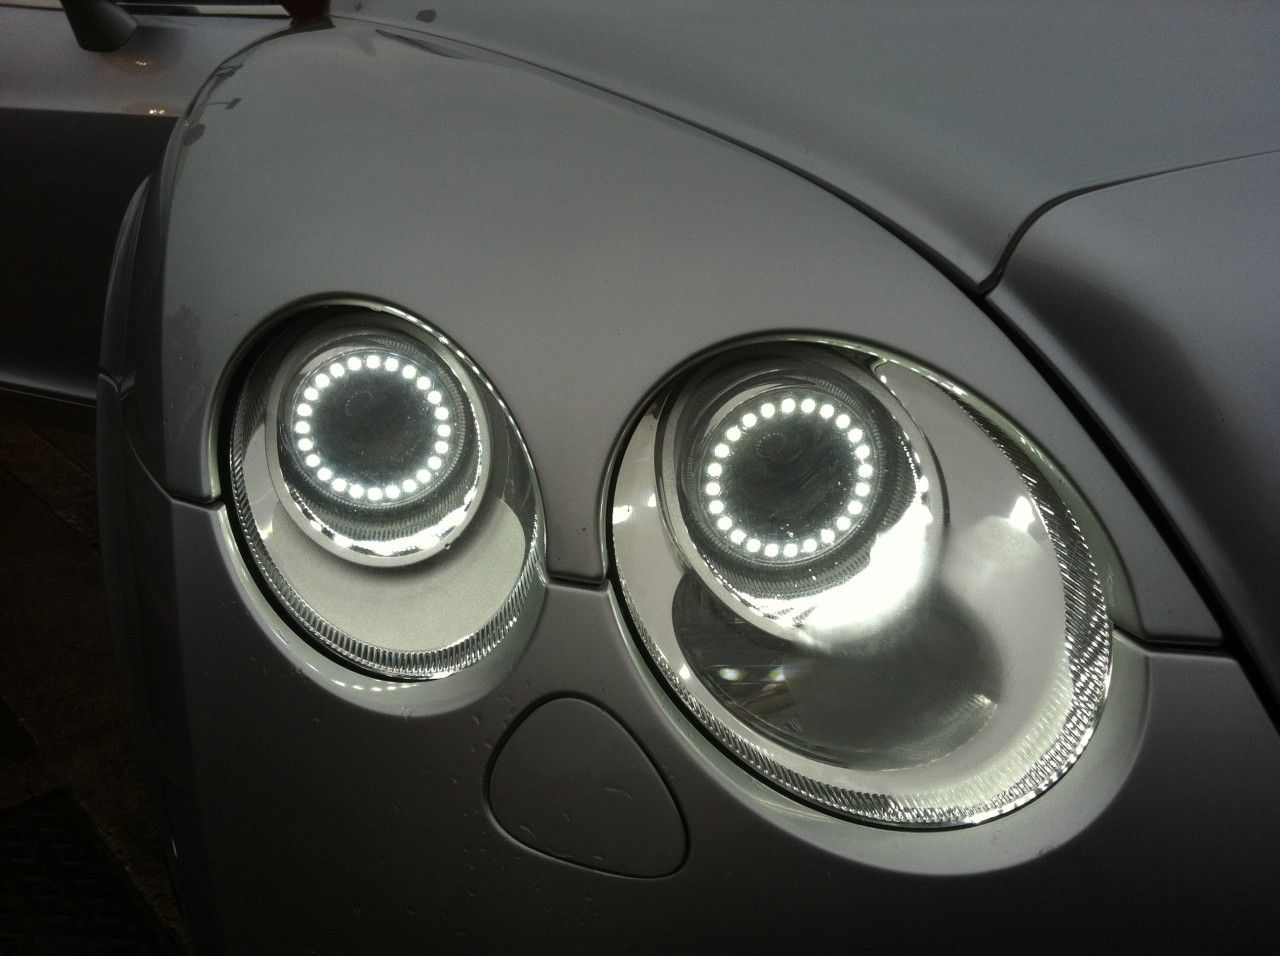 Bentley Continental Gt Headlight Conversion To 2013 Led